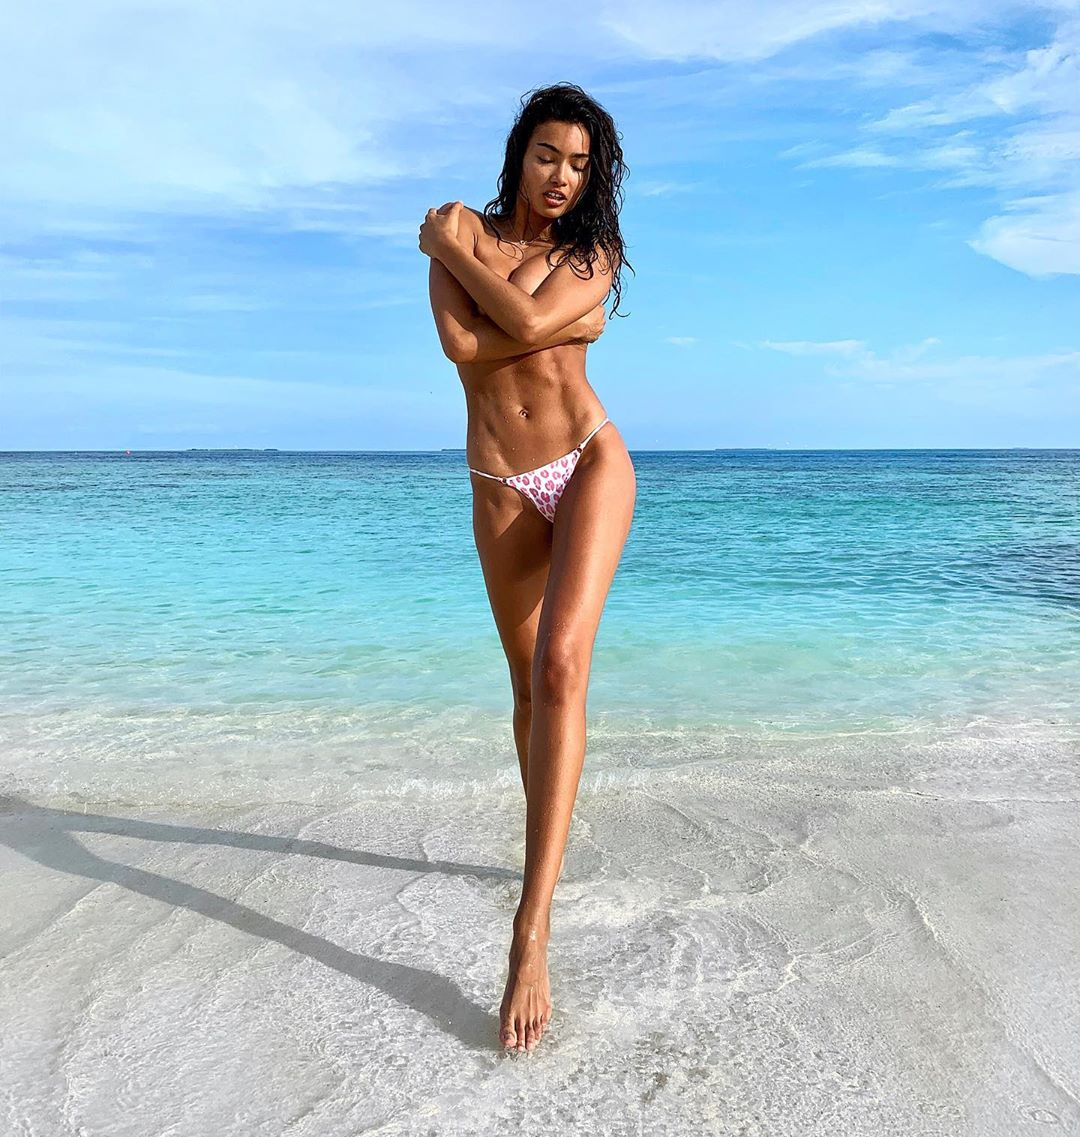 Kelly Gale Top Modeling On The Beach - Kelly Gale Top Modeling On The Beach